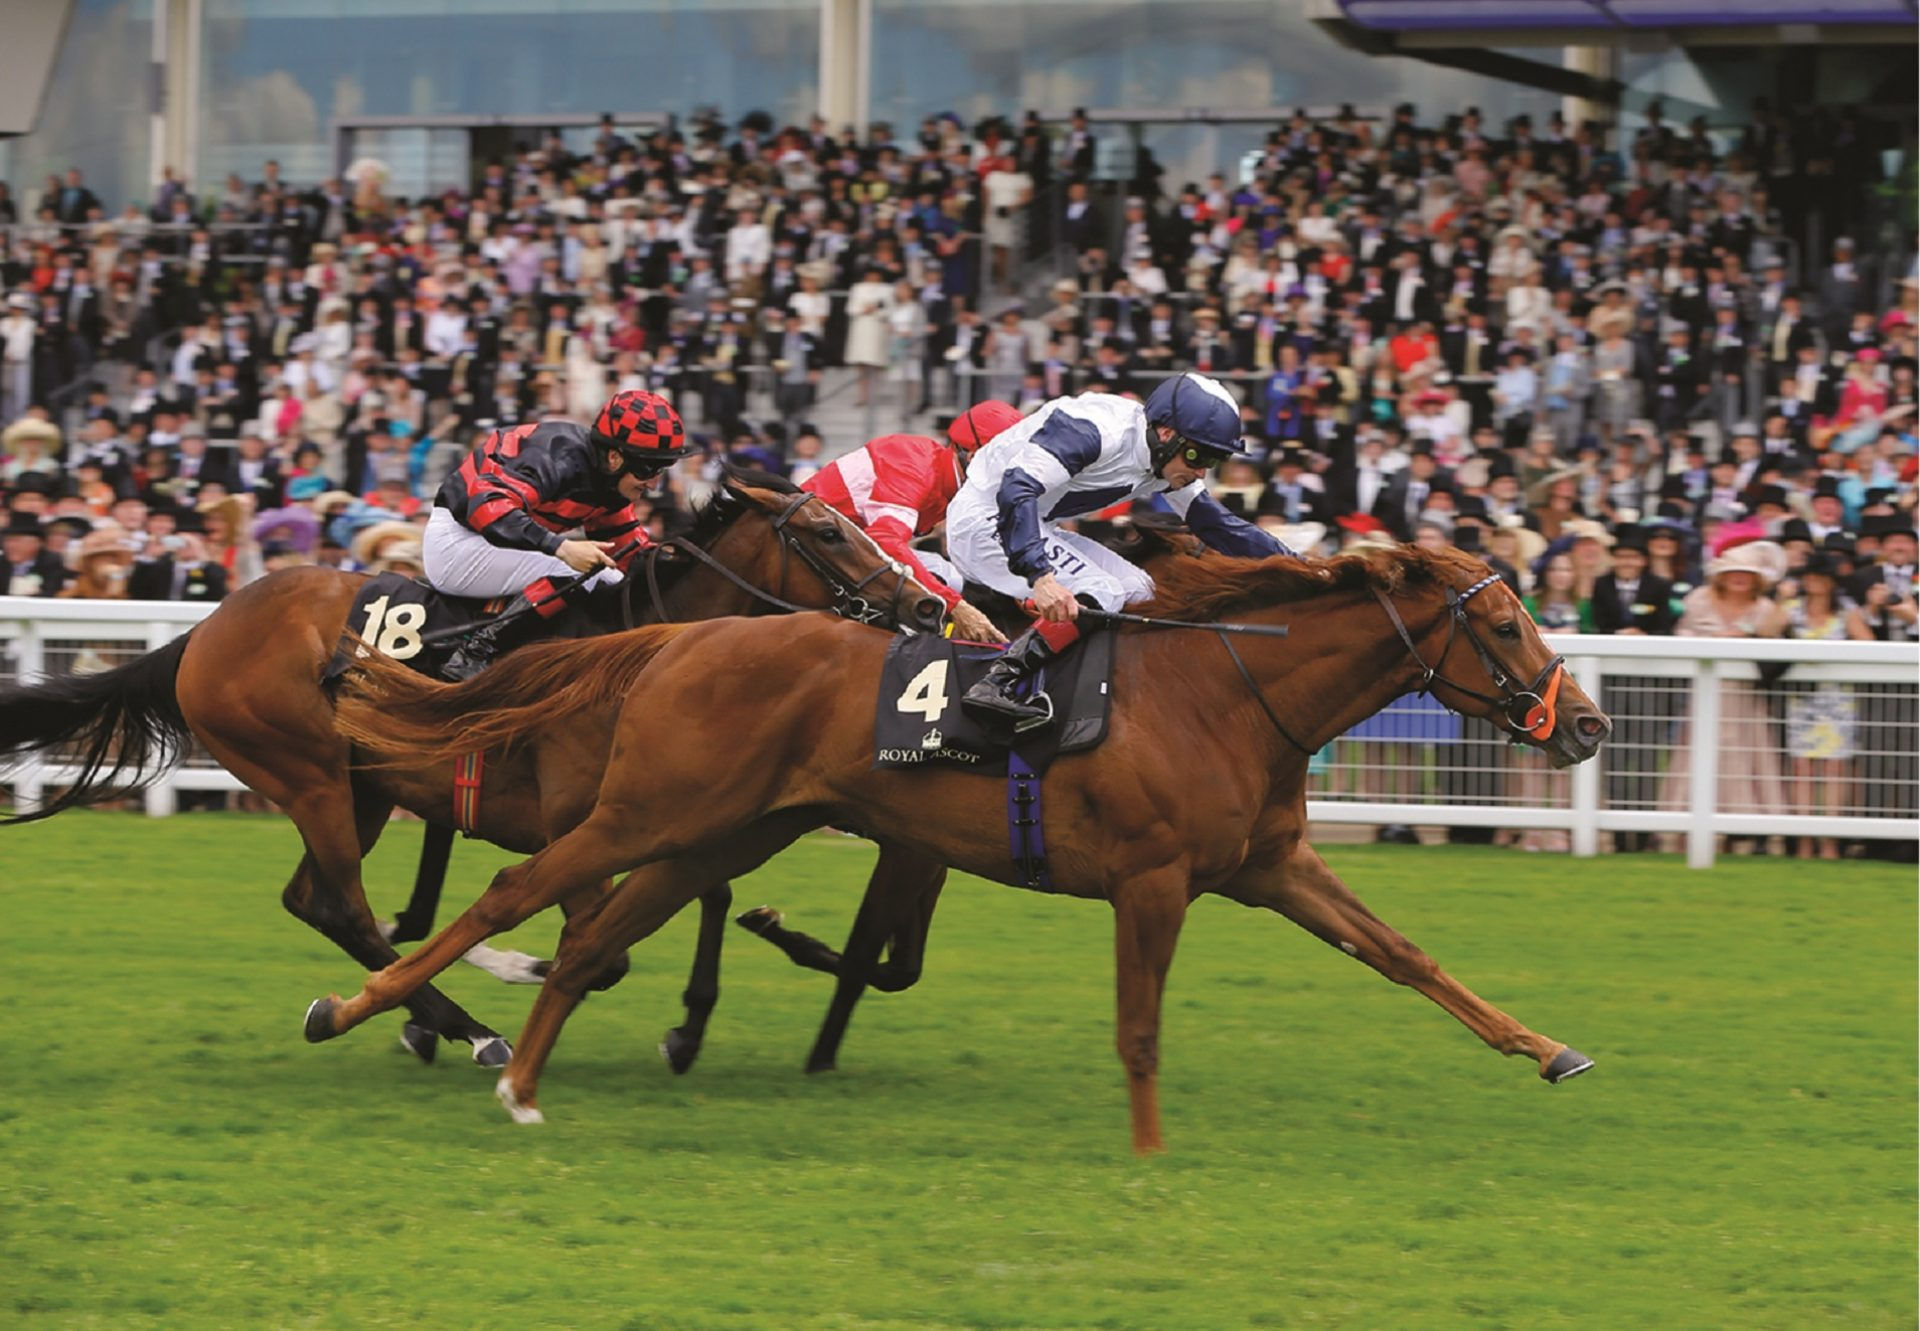 Anthem Alexander (Starspangledbanner) winning the G2 Queen Mary Stakes at Royal Ascot